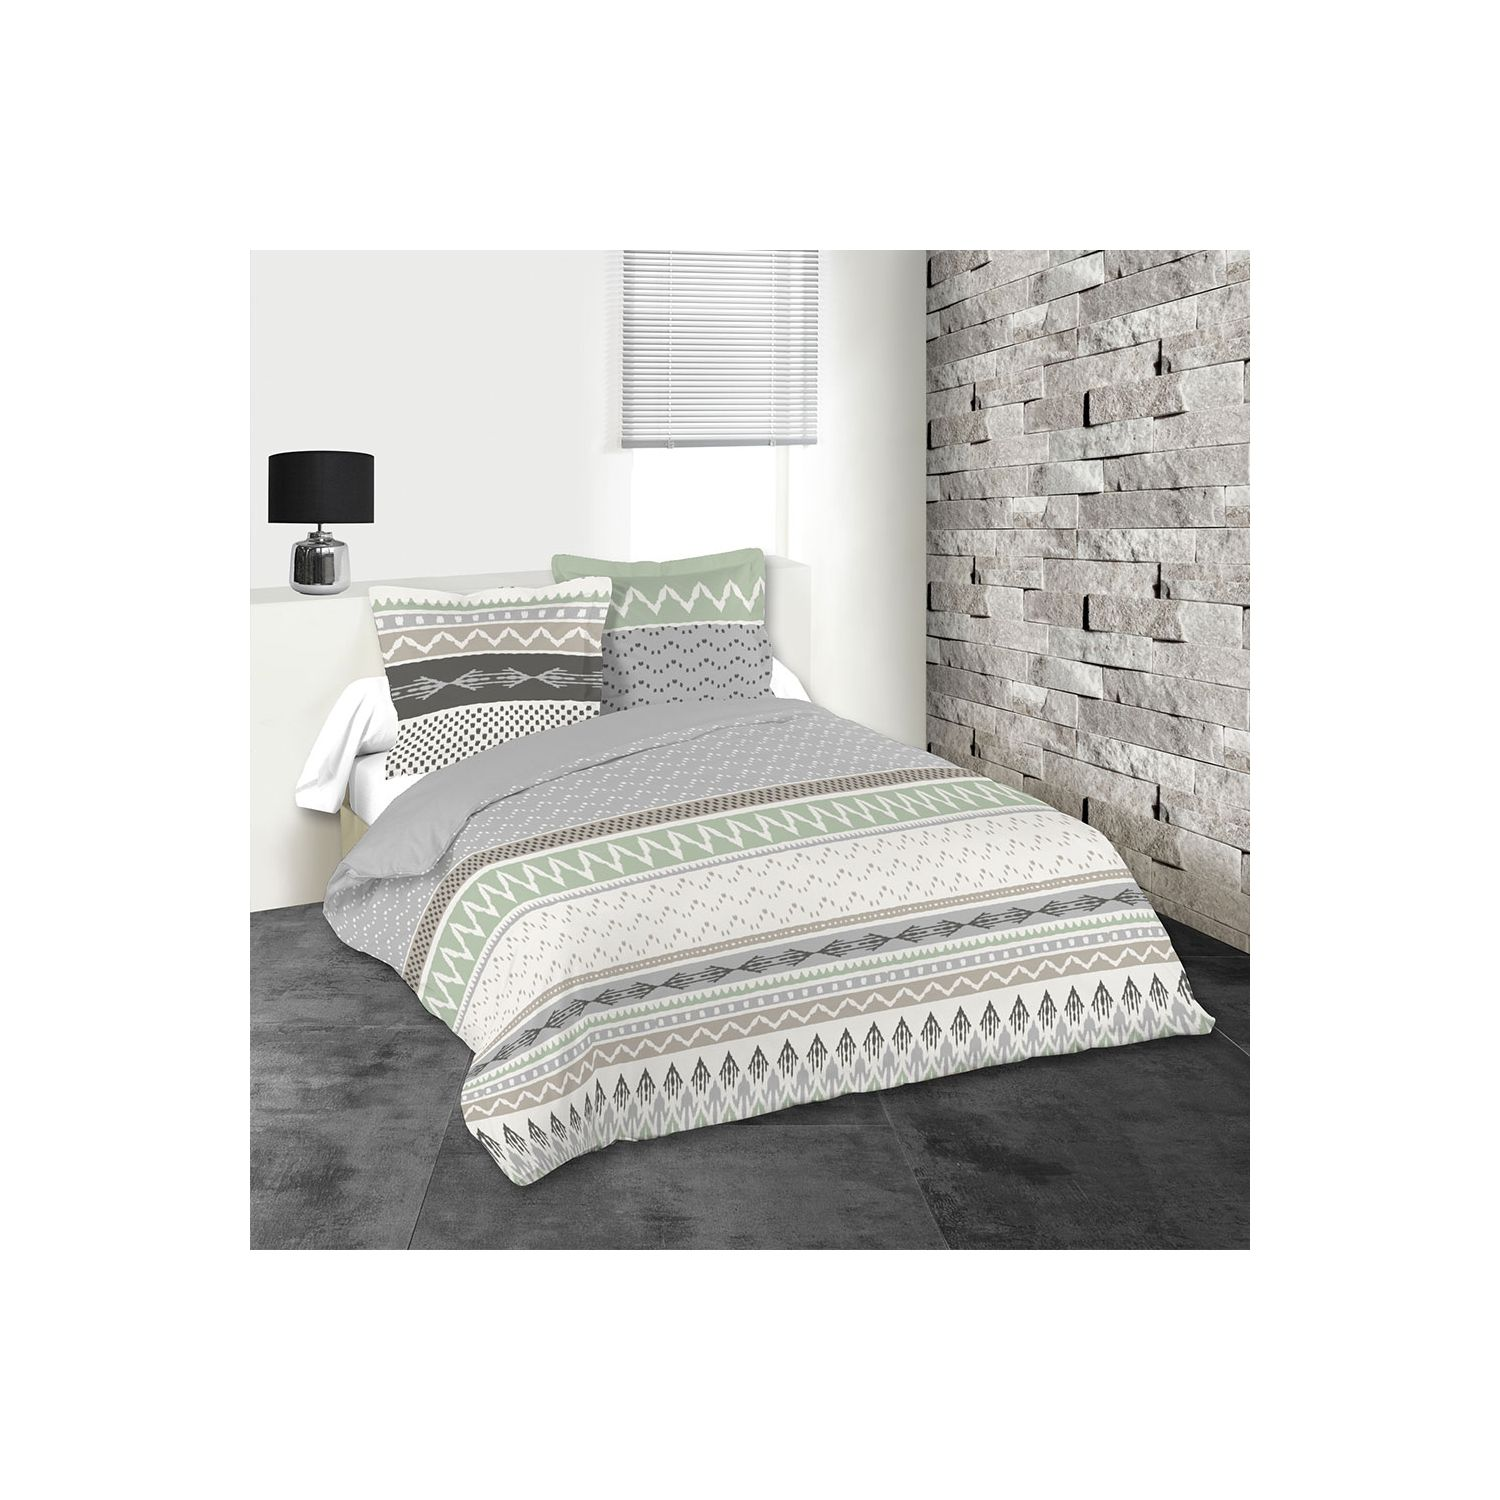 Housse de couette - 220 x 240 cm + Taies - Greeny